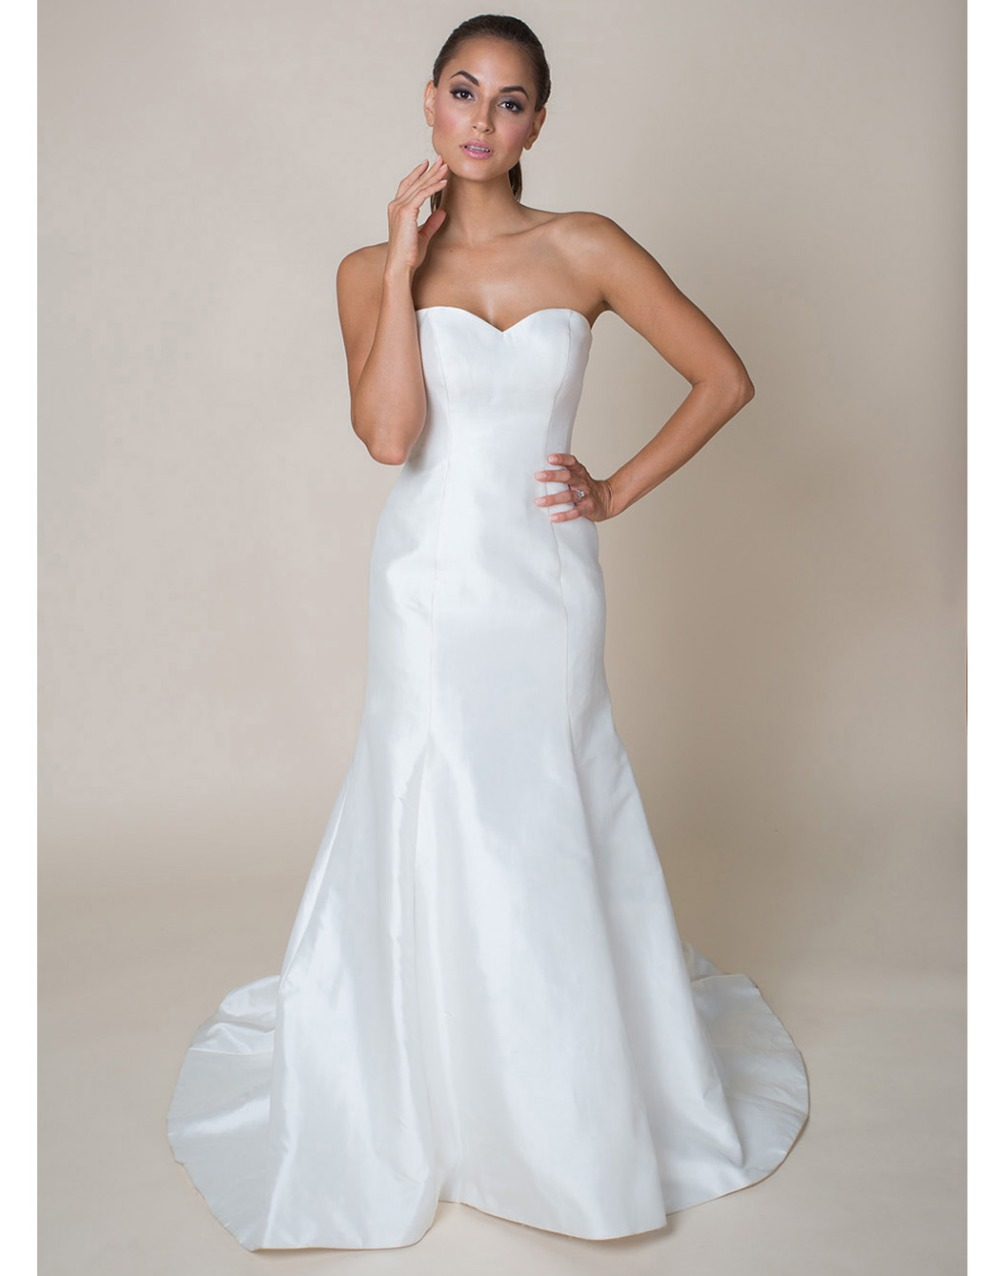 different wedding dresses for different destinations different wedding dresses different wedding dresses for different destinations